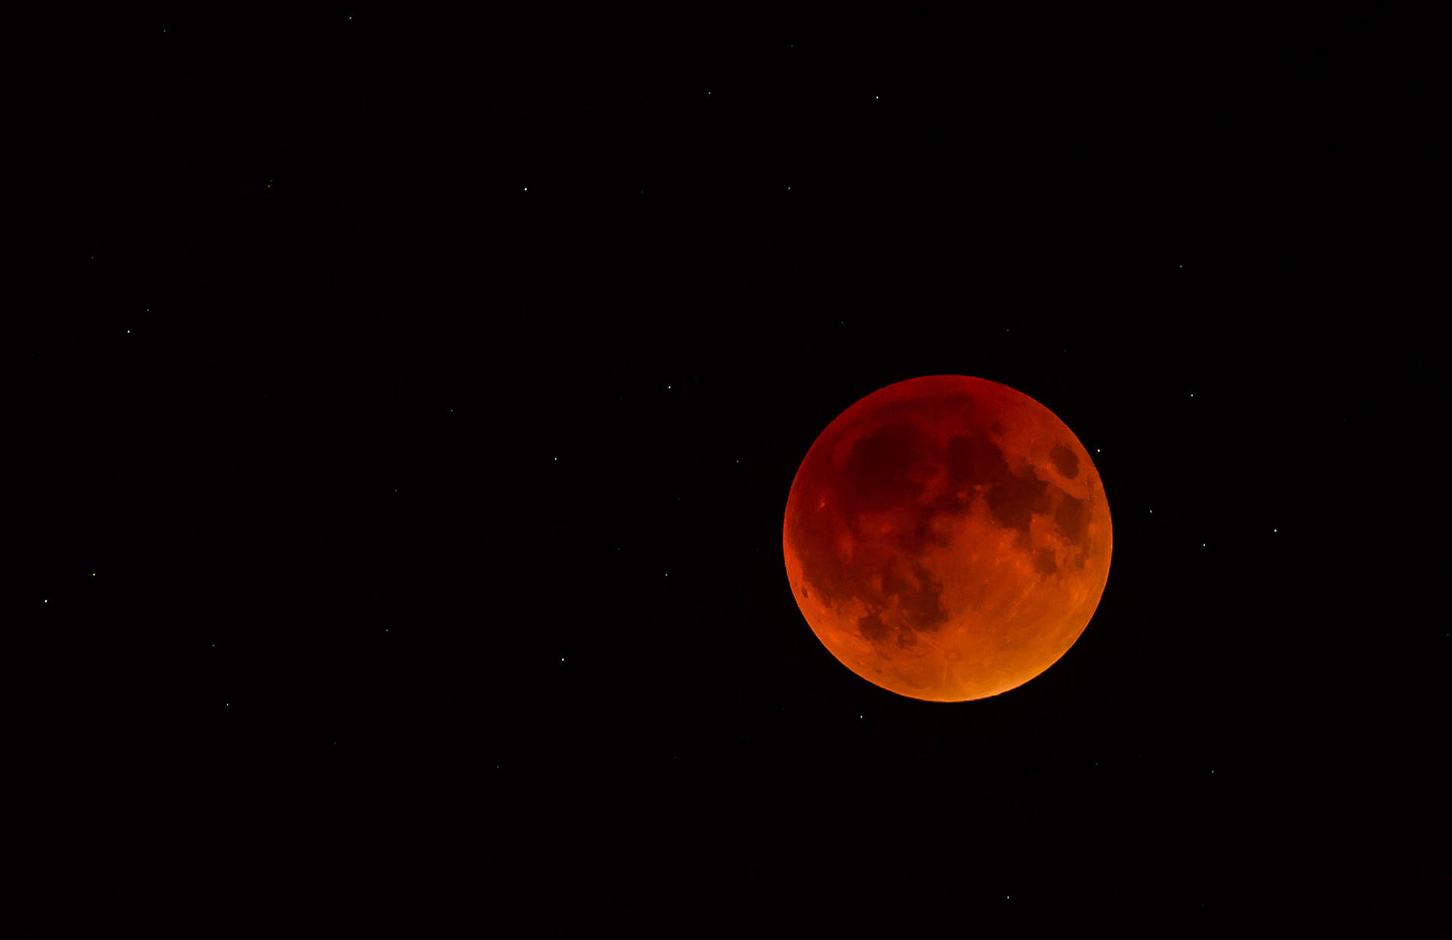 blood moon phase tonight - photo #43